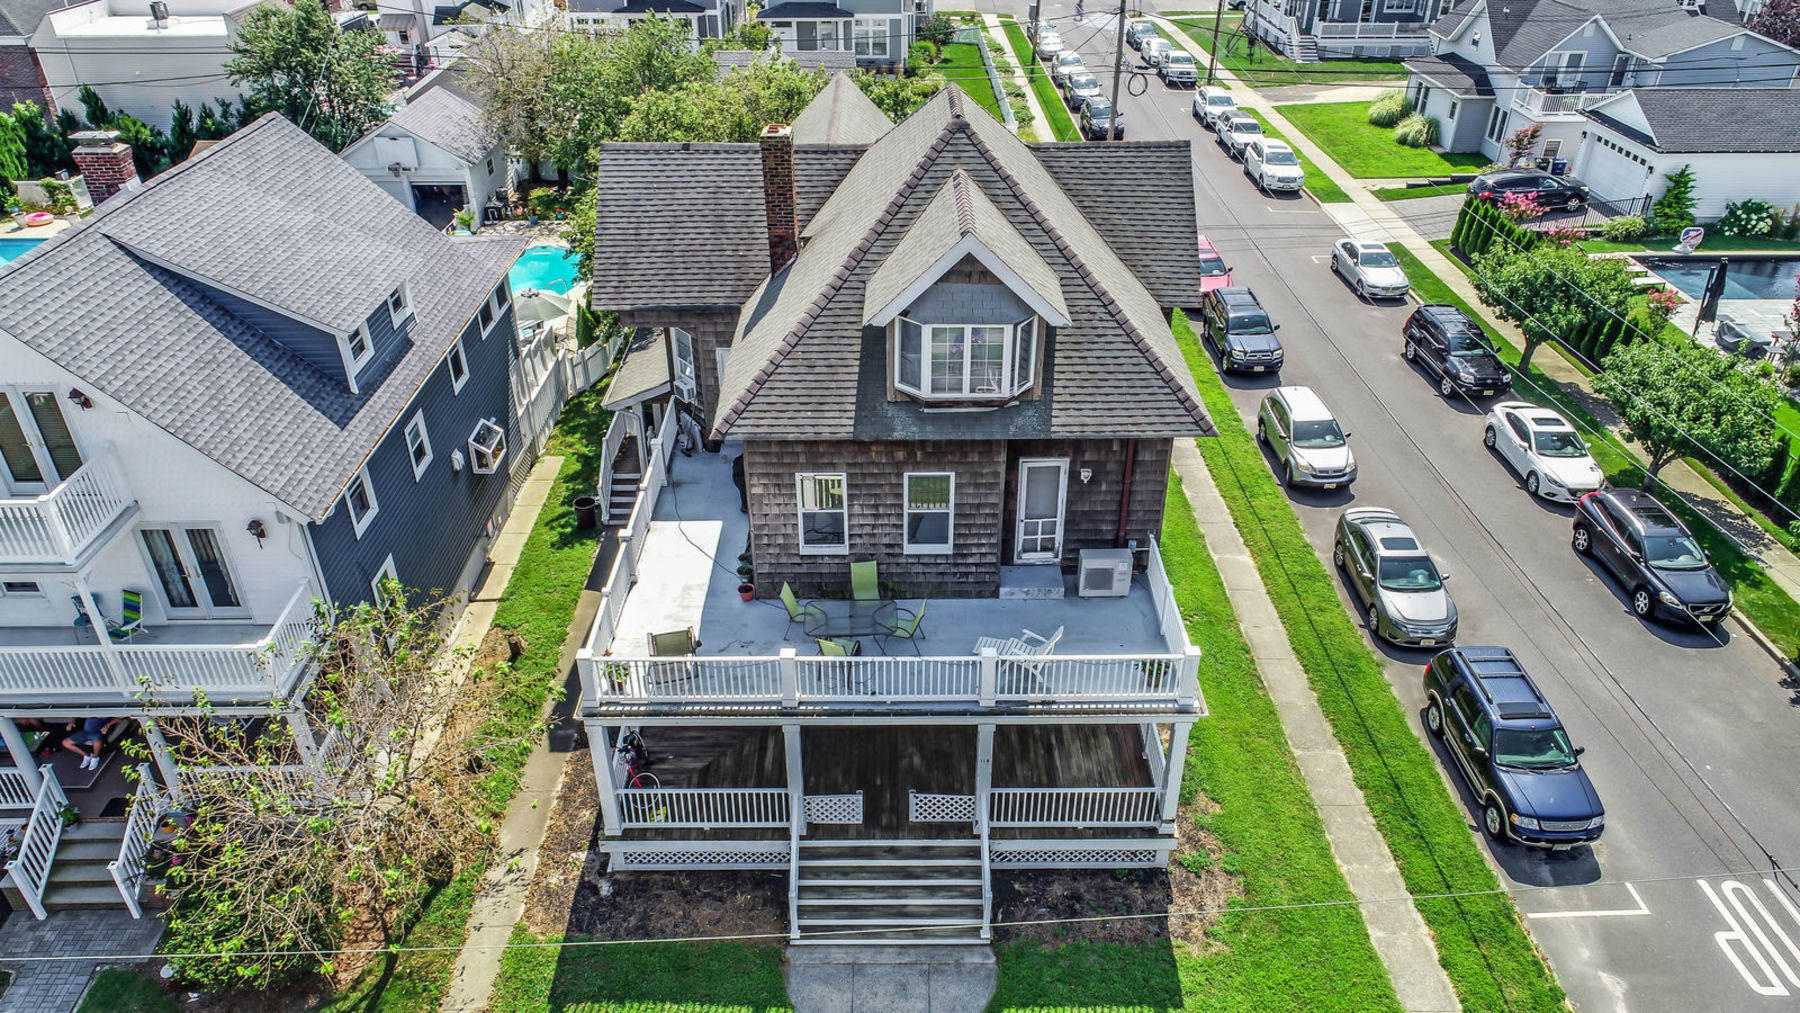 Single Family Home for Sale at Belmar Shore Colonial 115 Fourth Avenue, Belmar, New Jersey 07719 United States